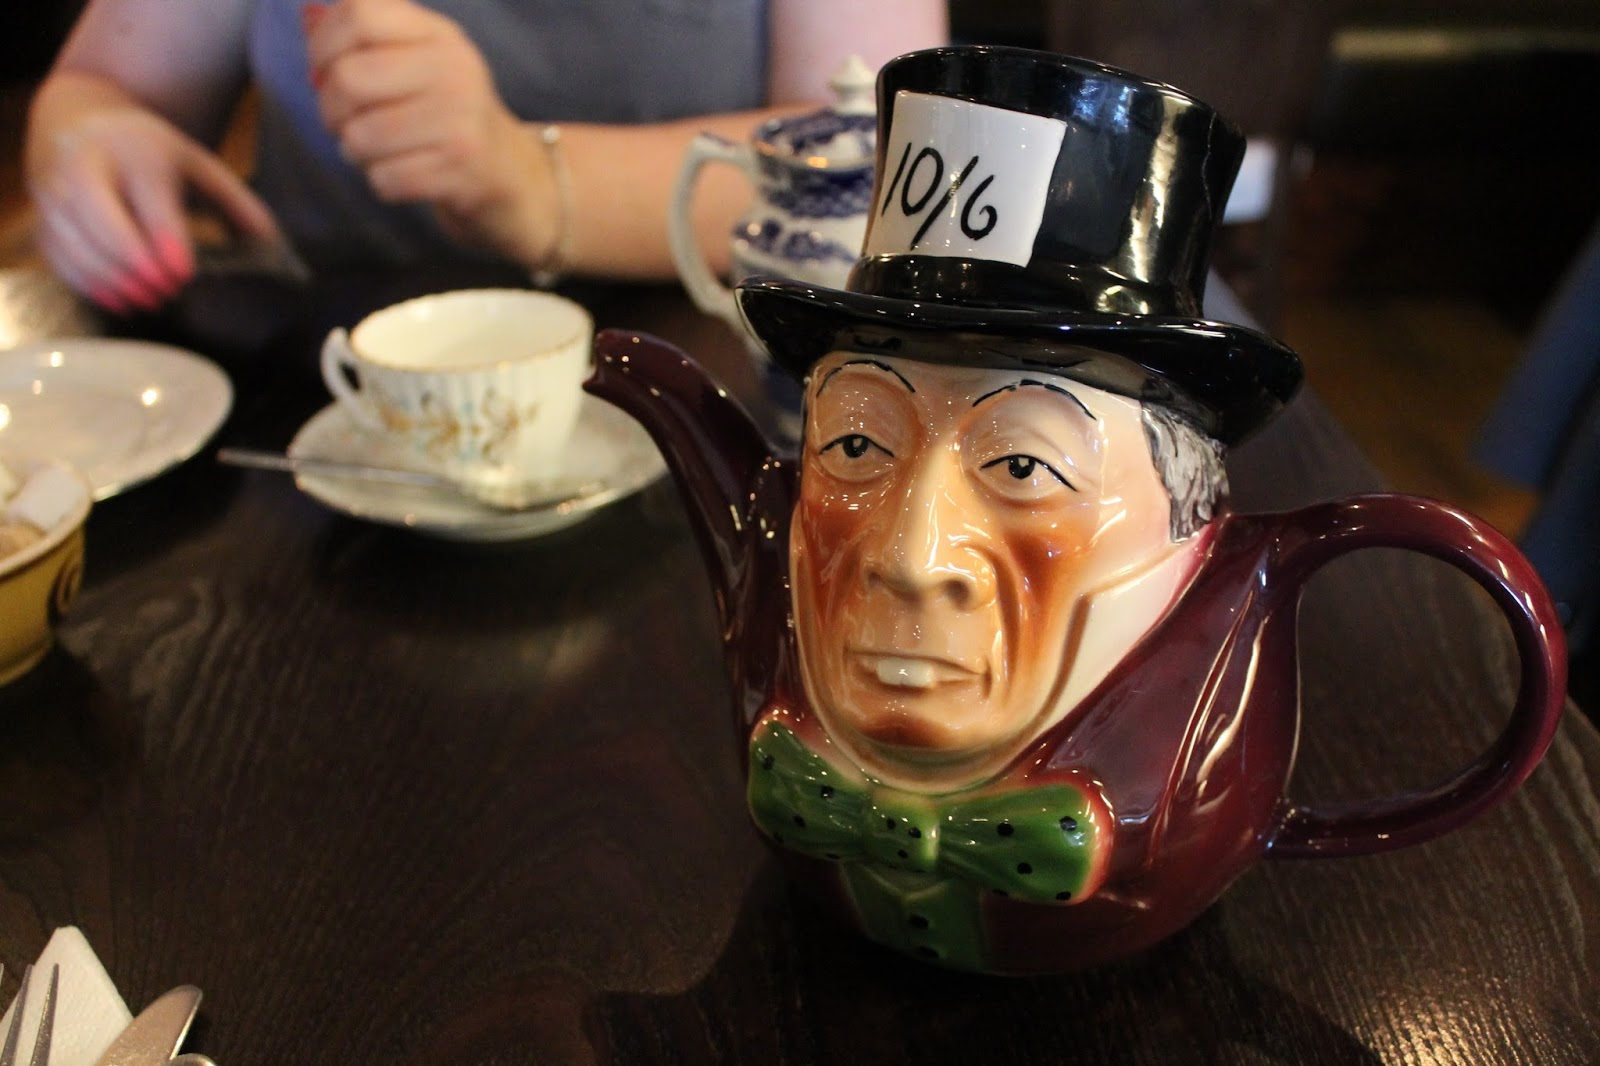 Falling down the rabbit hole - Mad Hatters Afternoon Tea at How Do You Do